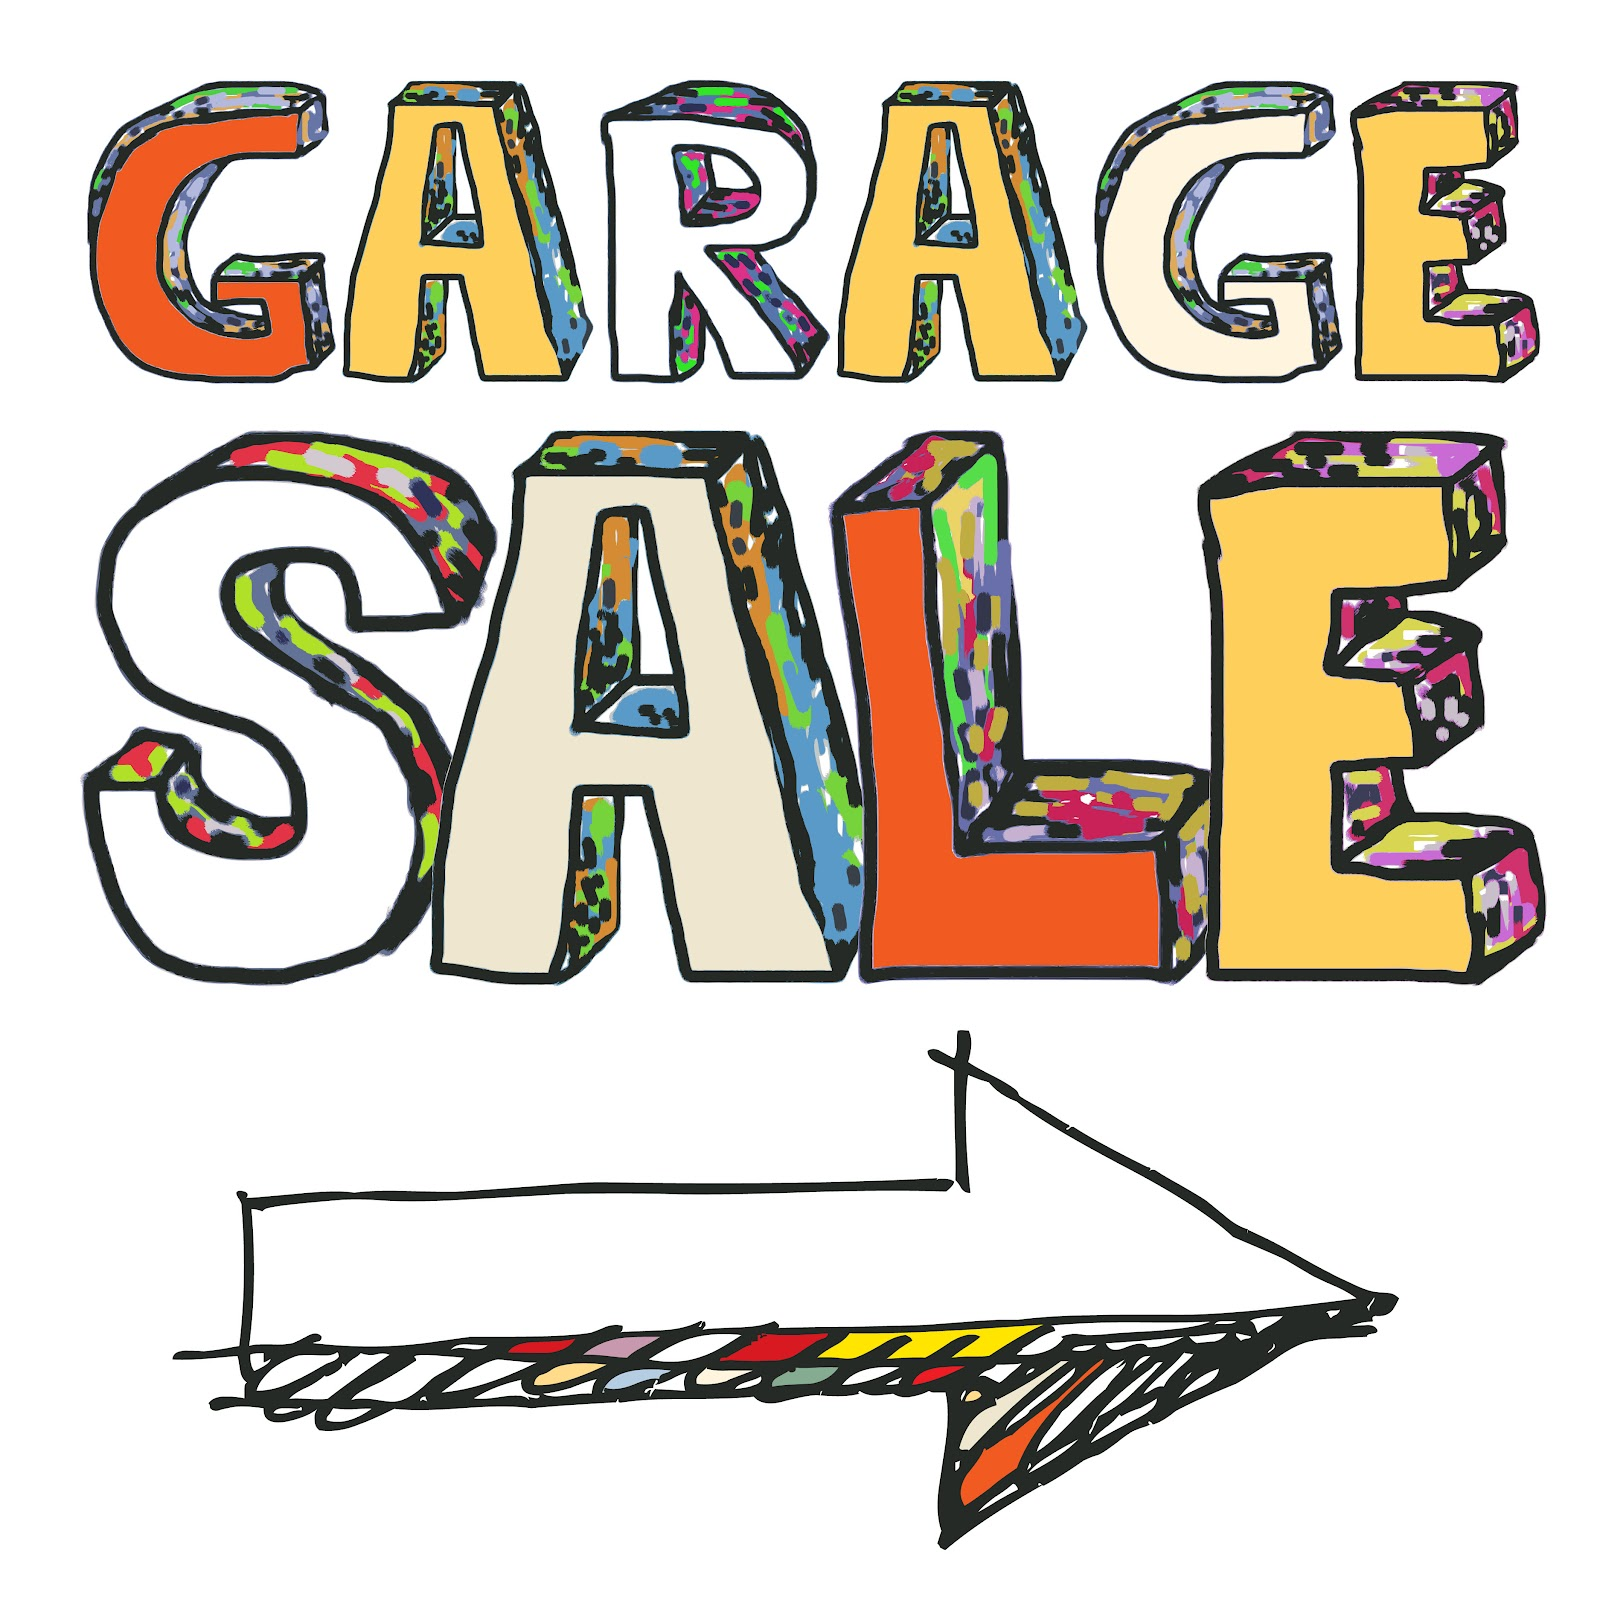 free garage sale clip art pictures clipartix rh clipartix com garage sale graphics free yard sale graphics for facebook